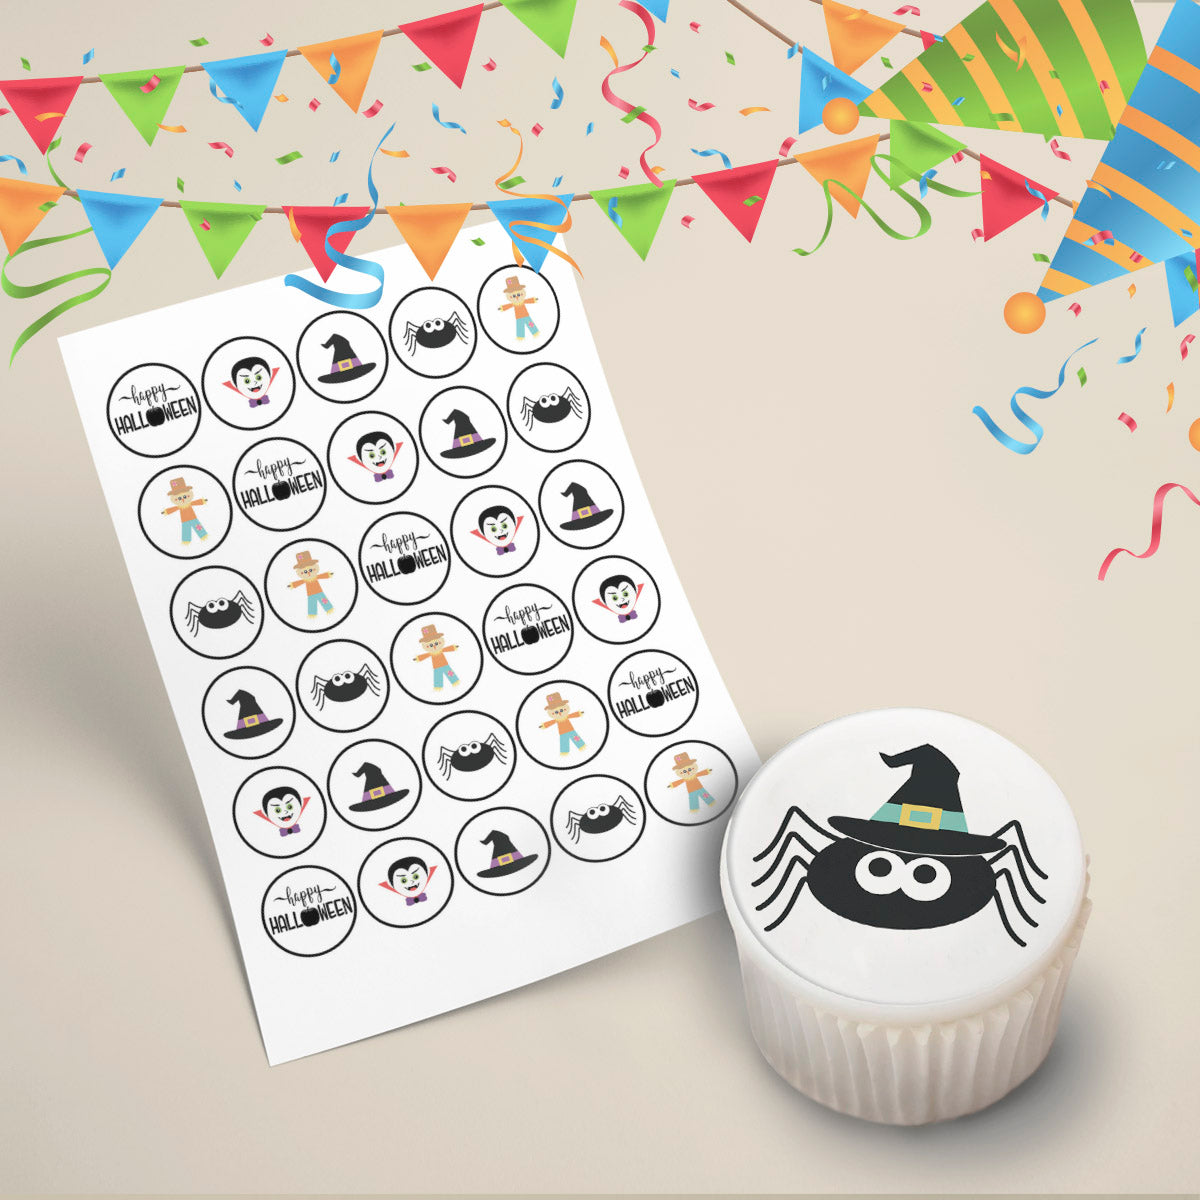 30x Halloween Cupcake Toppers Wafer or Icing Pre-cut Edible Images 35mm Cake Decorating